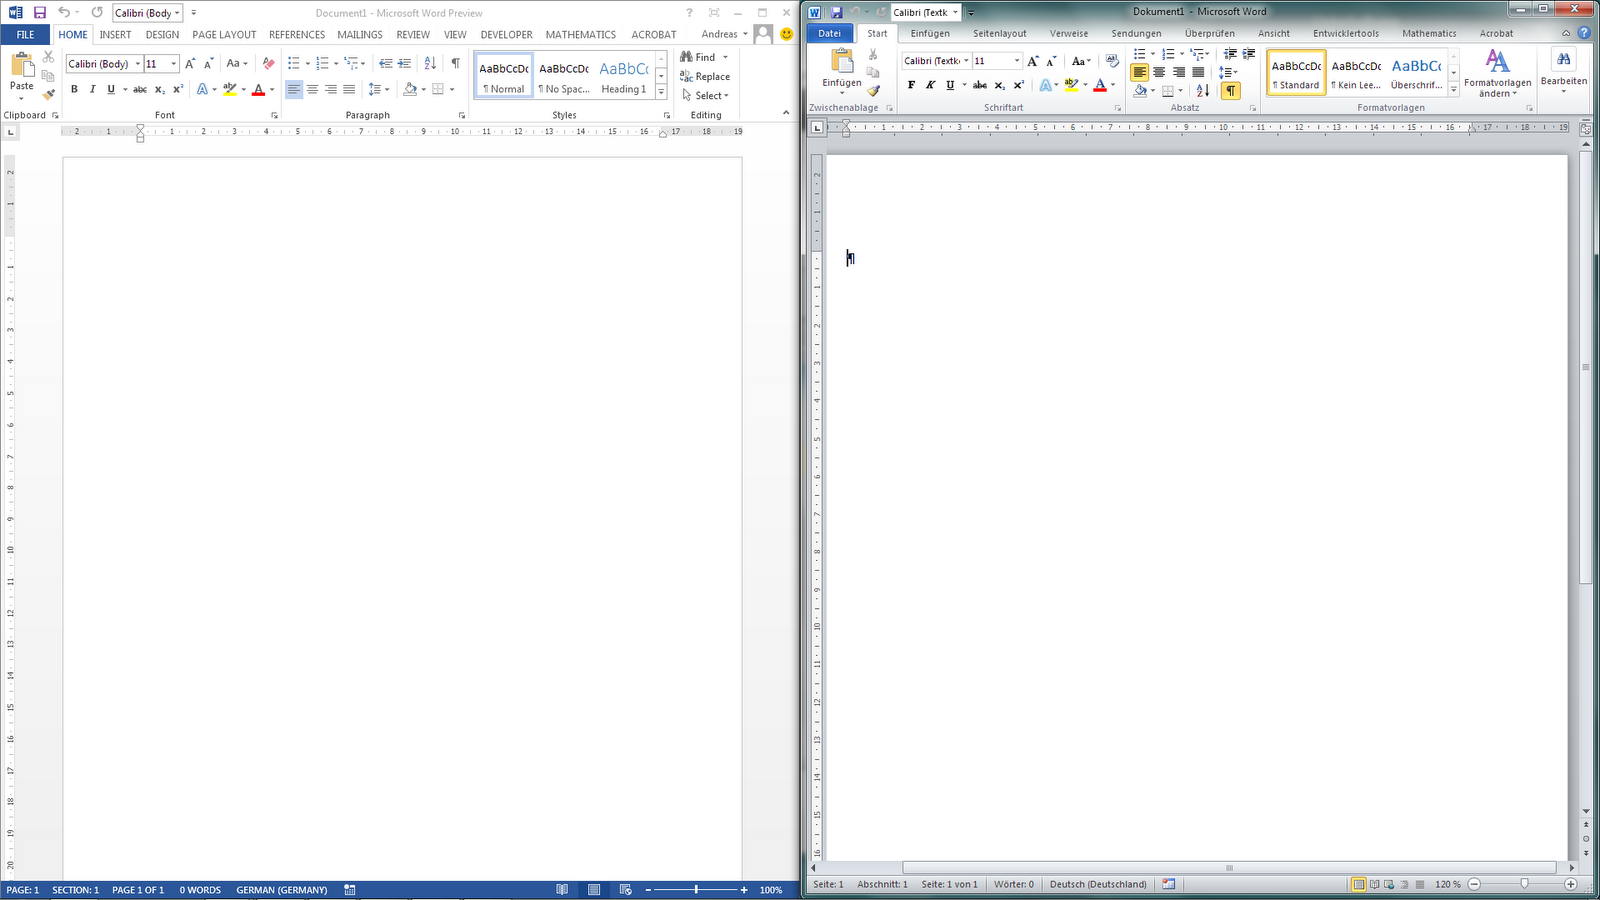 ms word dictionary in 2013